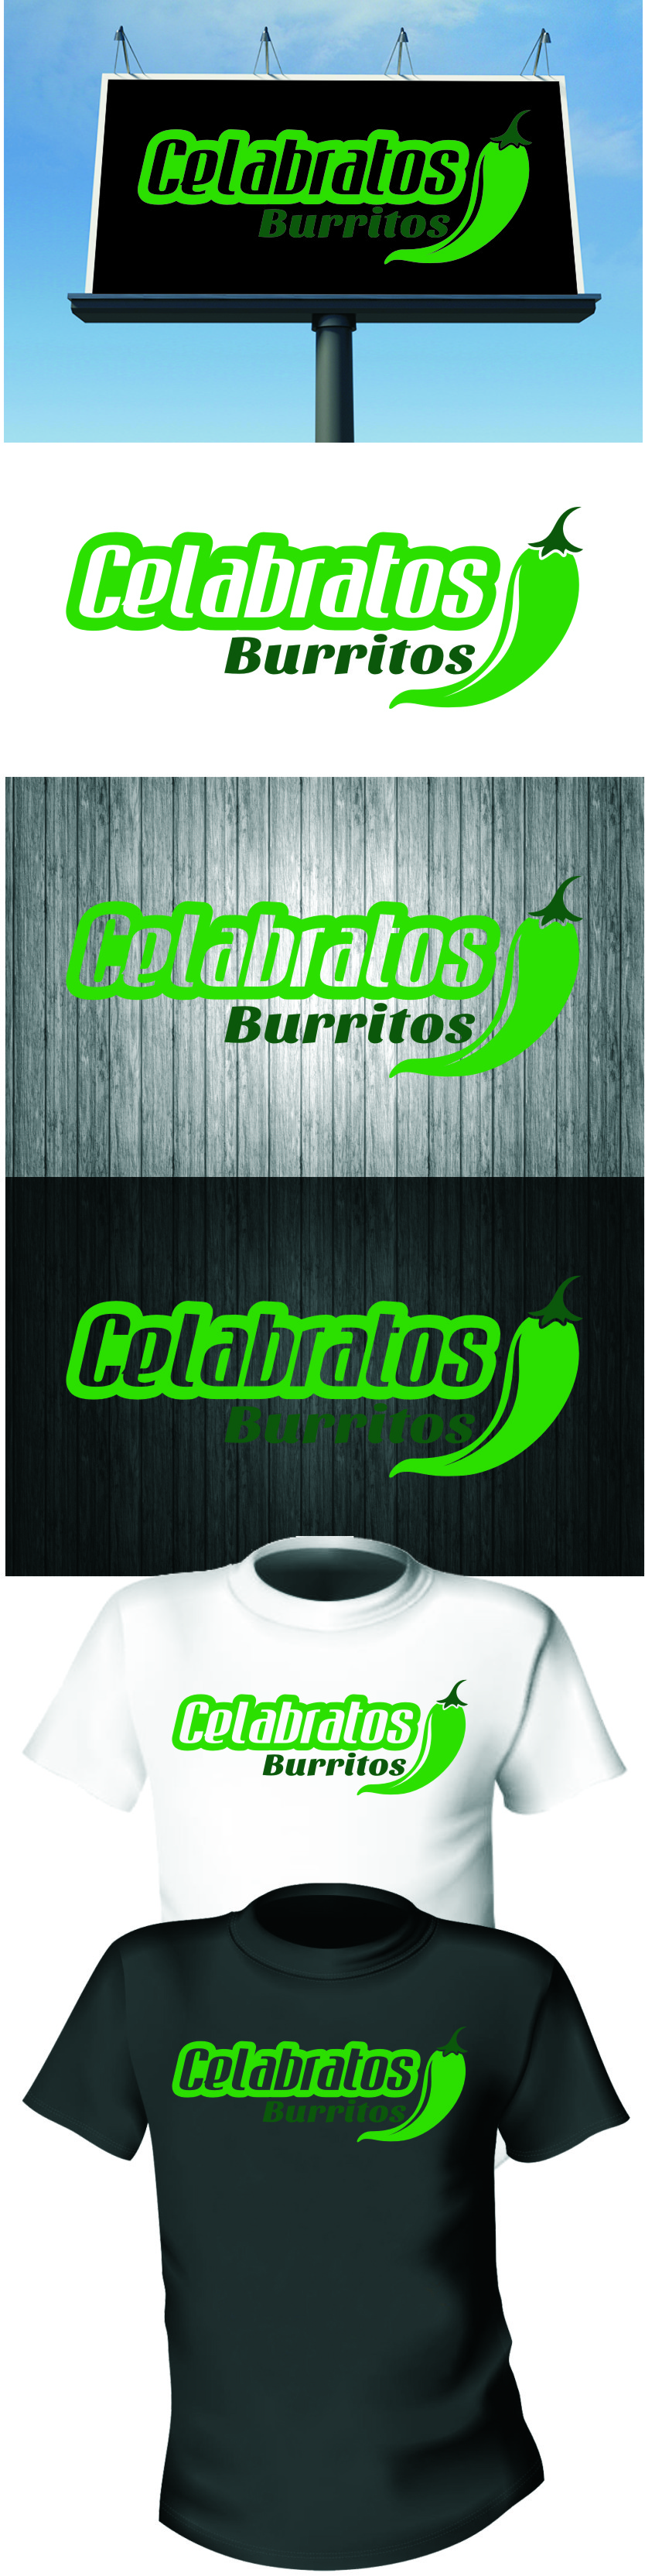 Logo Design by RasYa Muhammad Athaya - Entry No. 99 in the Logo Design Contest Imaginative Logo Design for Celabratos.